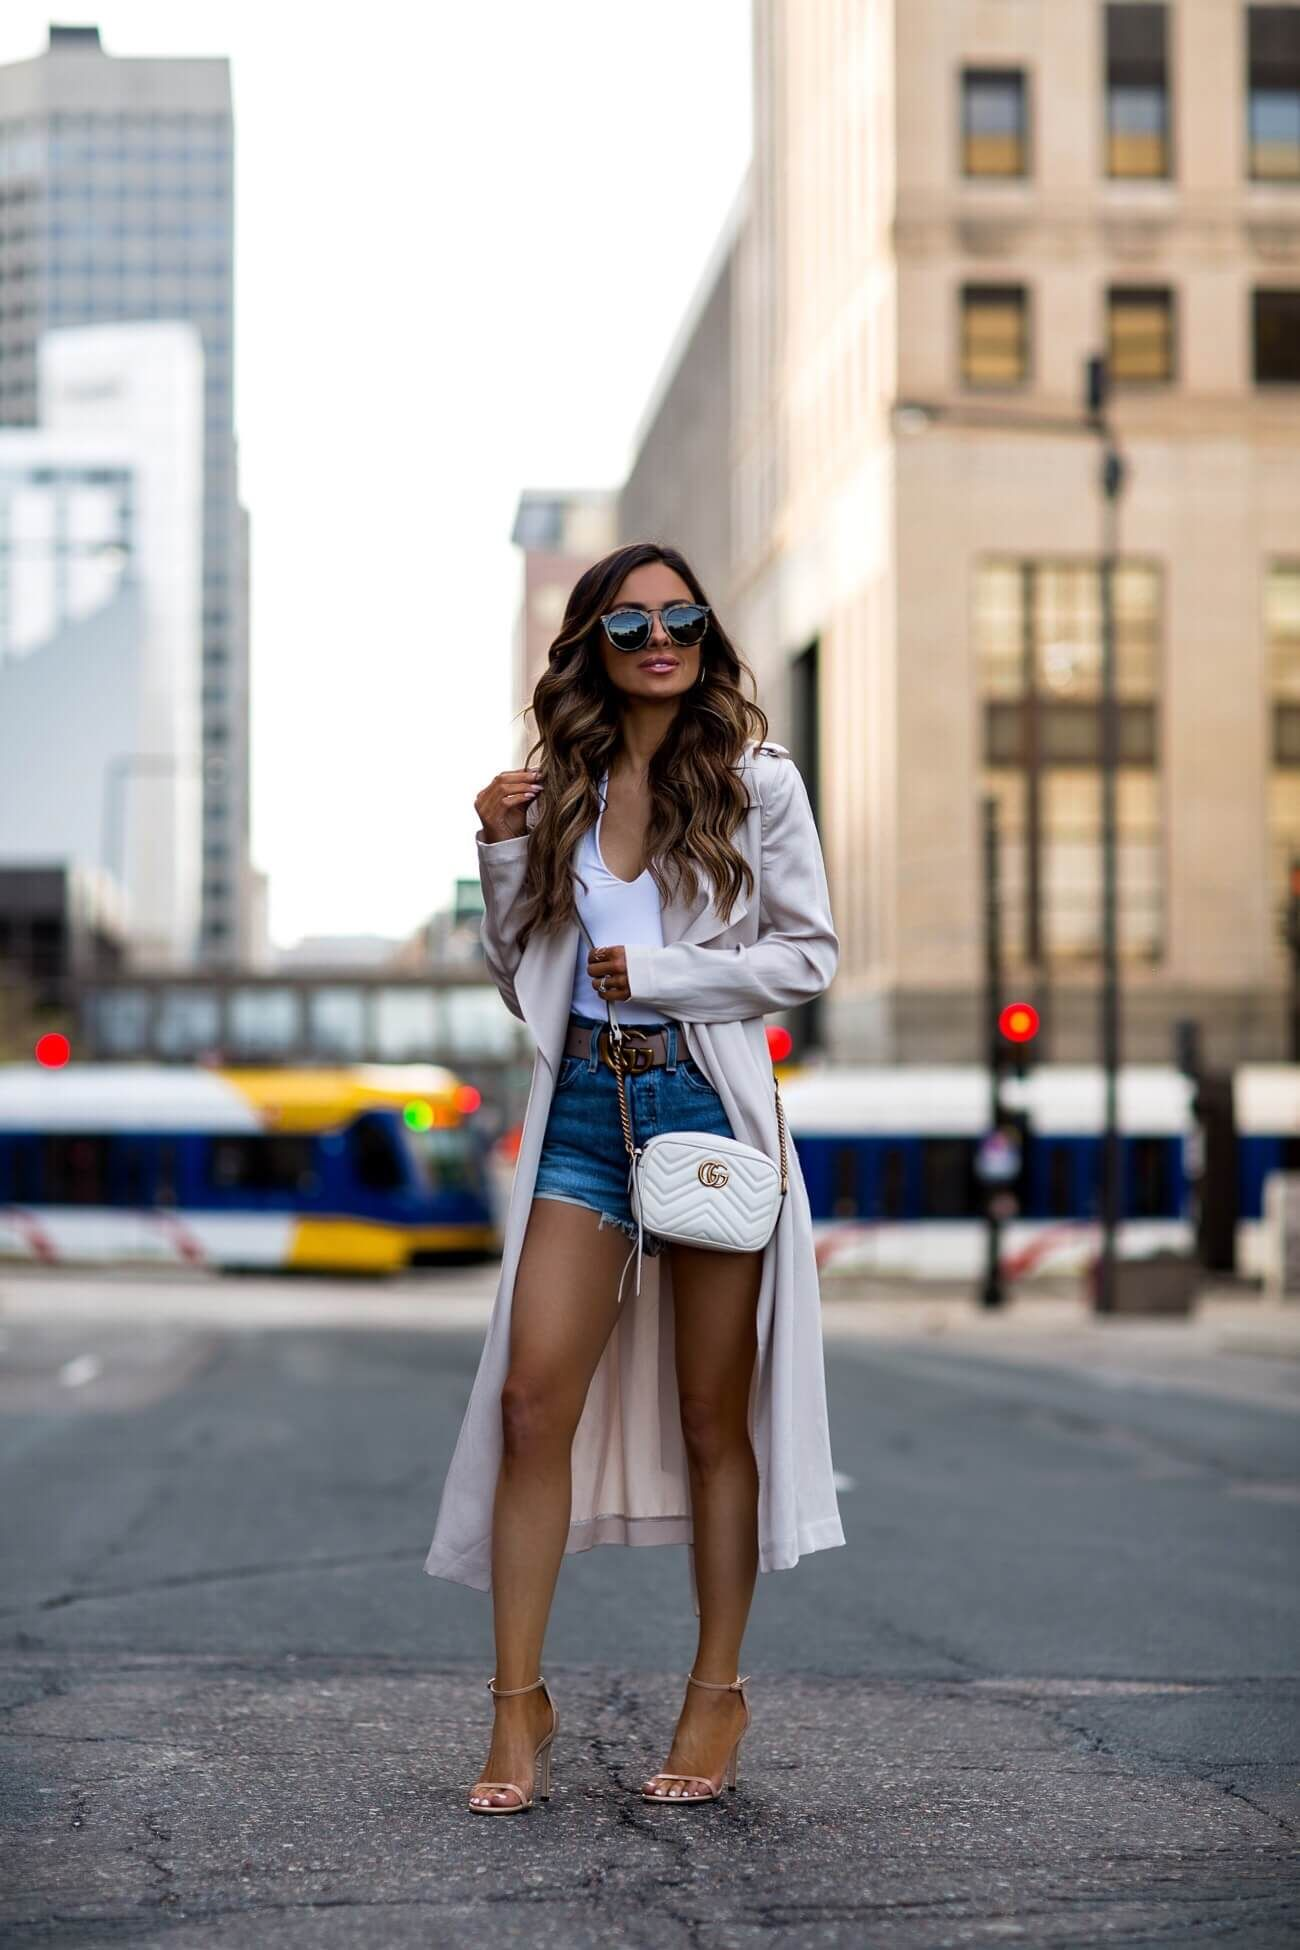 dc3d38b313 Basics To Take You Into Summer - fashion blogger mia mia mine wearing a  nude trench coat and cut-off denim shorts